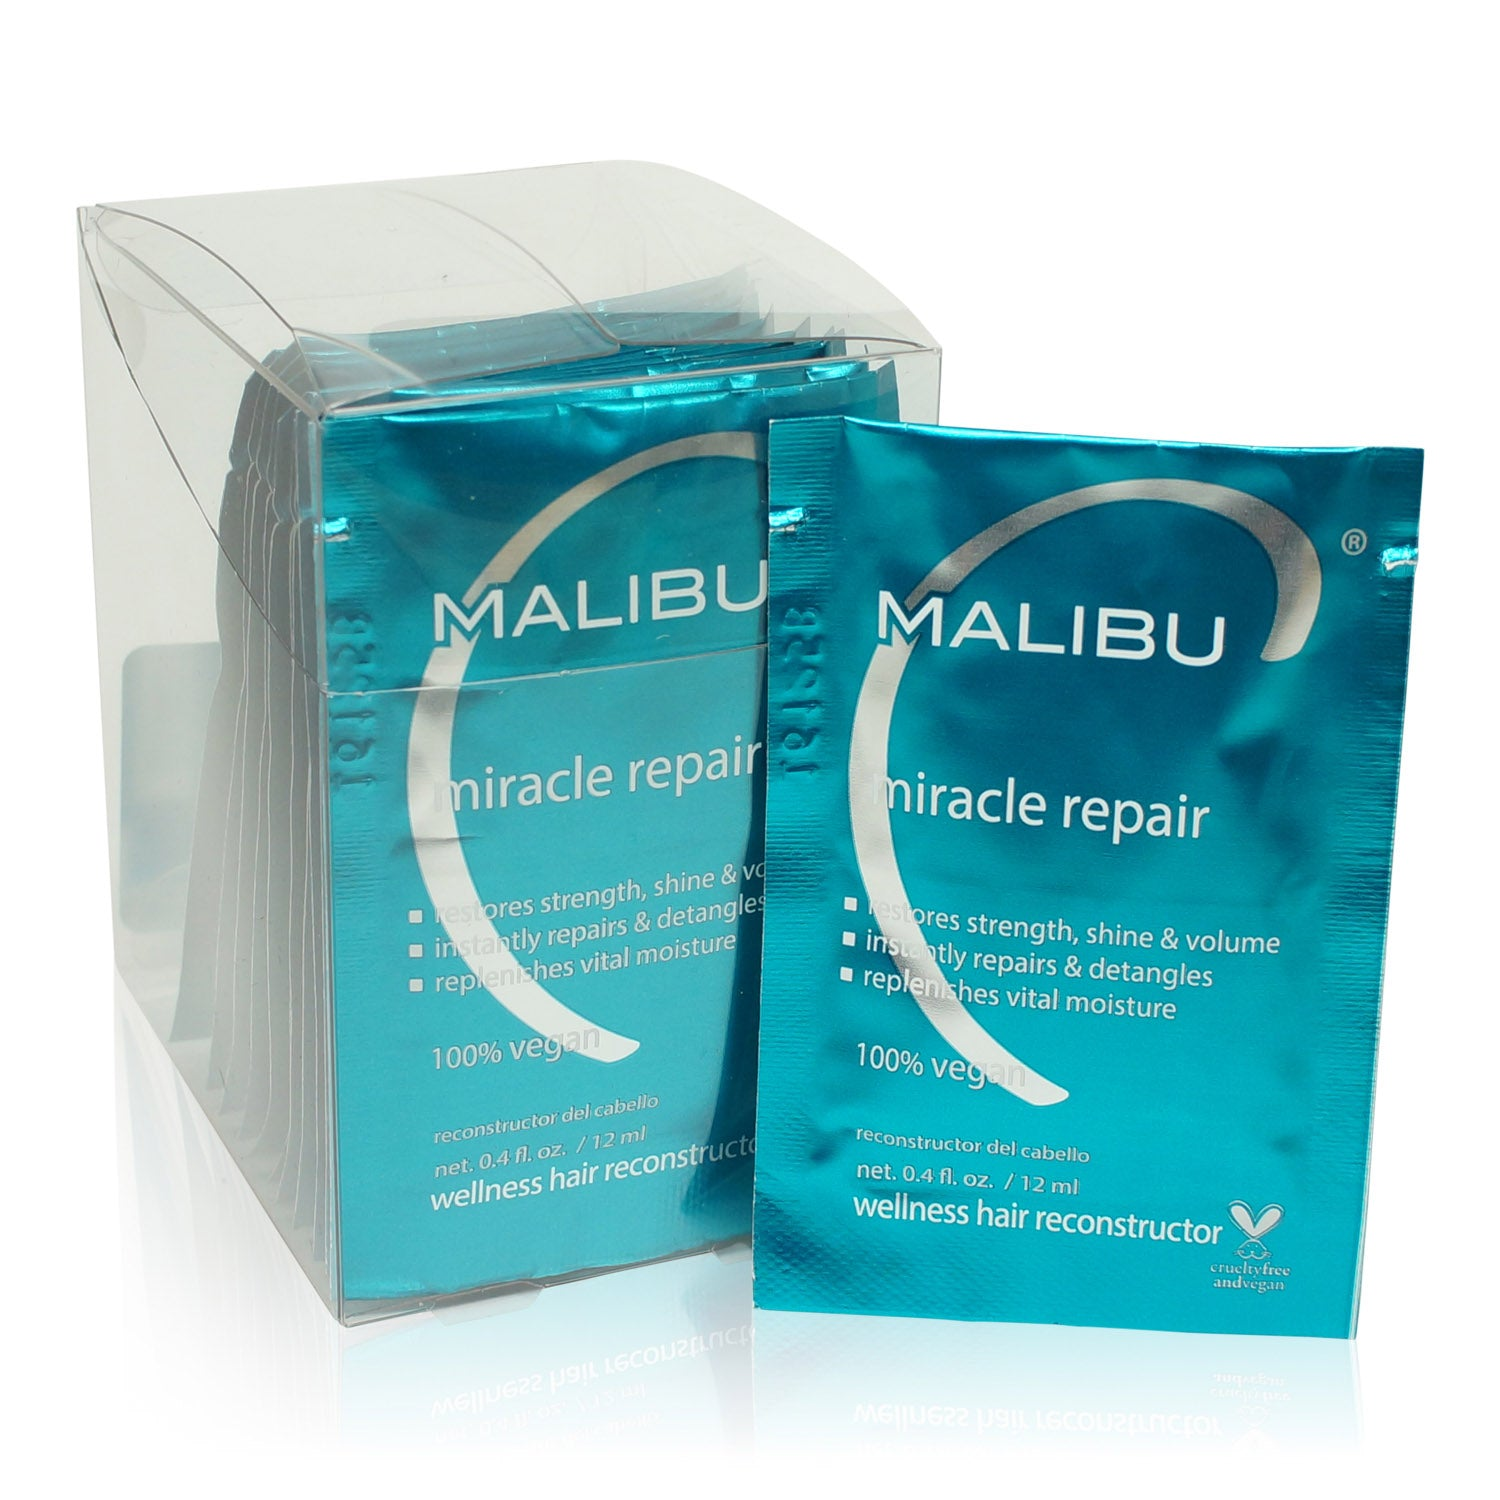 MALIBU ~ MIRACLE REPAIR WELLNESS RECONSTRUCTOR (12 PK)